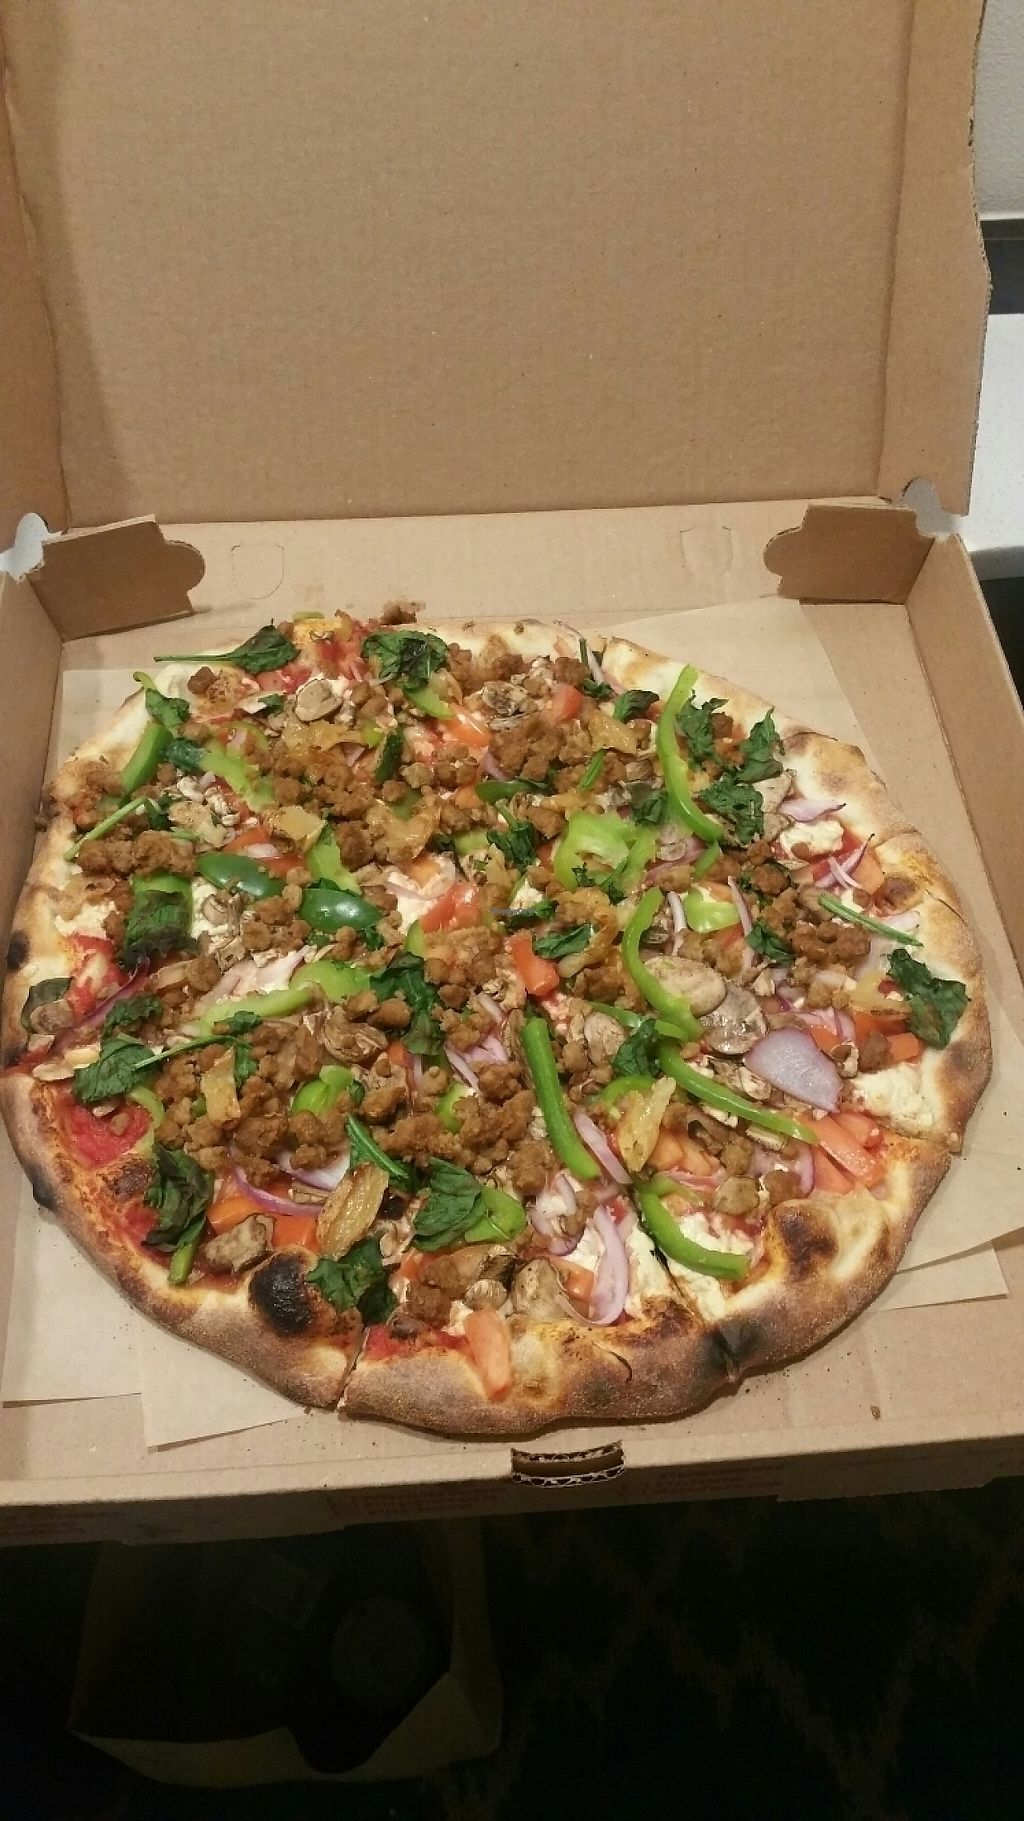 "Photo of Piaza Fresh  by <a href=""/members/profile/12SaRaH73"">12SaRaH73</a> <br/>Daiya Cheese, Vegan crumbles, tomatoes, red onions, green peppers, mushrooms, spinach, roasted garlic cloves <br/> May 28, 2017  - <a href='/contact/abuse/image/64237/263214'>Report</a>"